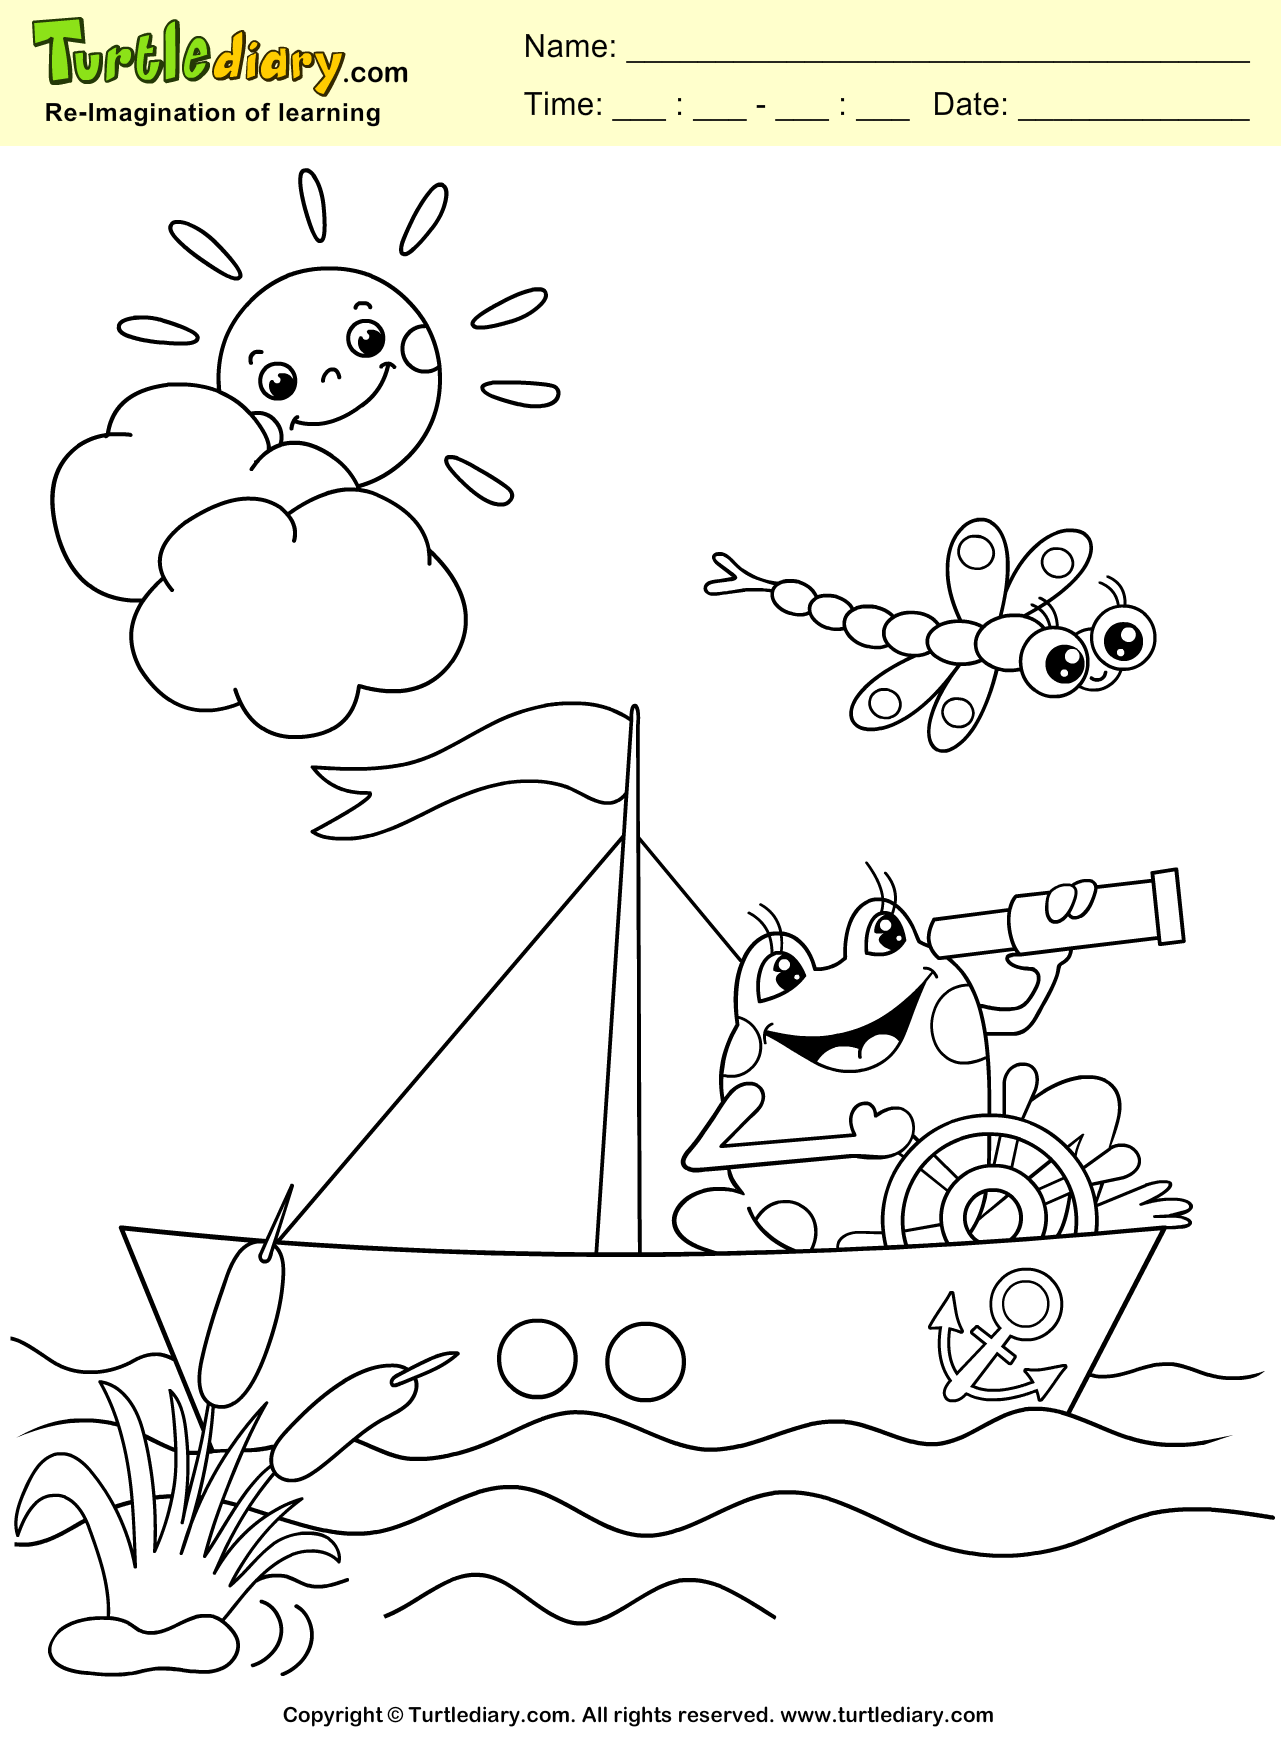 Frog and Boat Coloring Page